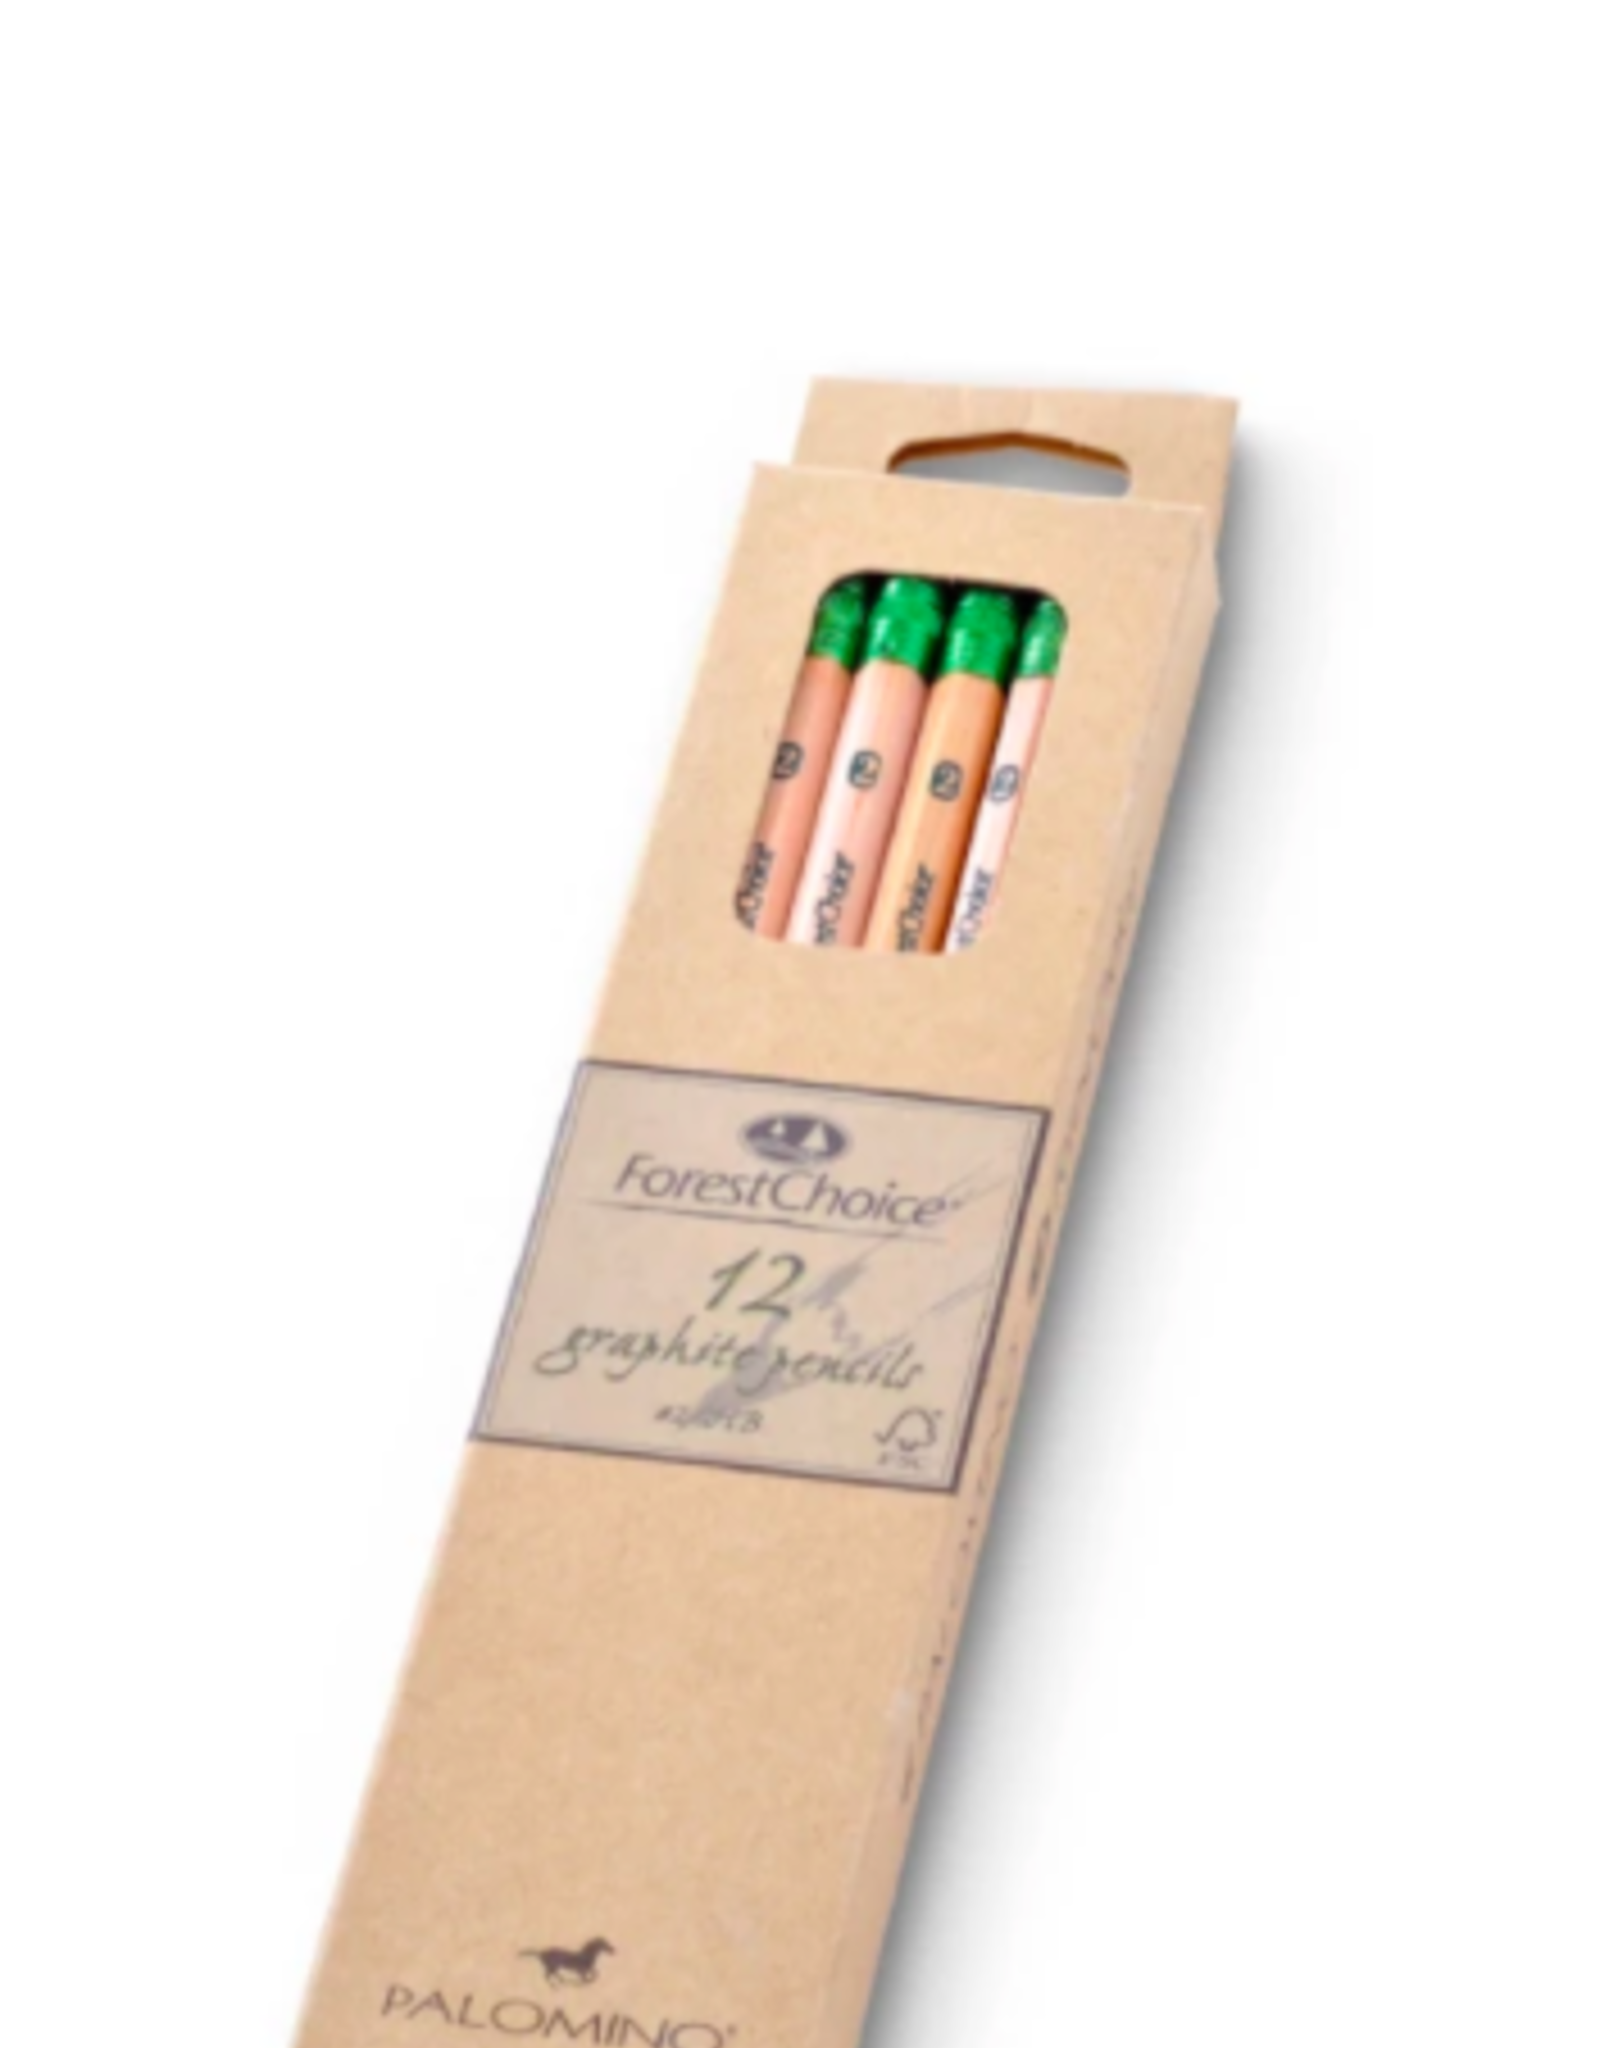 ForestChoice Graphite Pencils